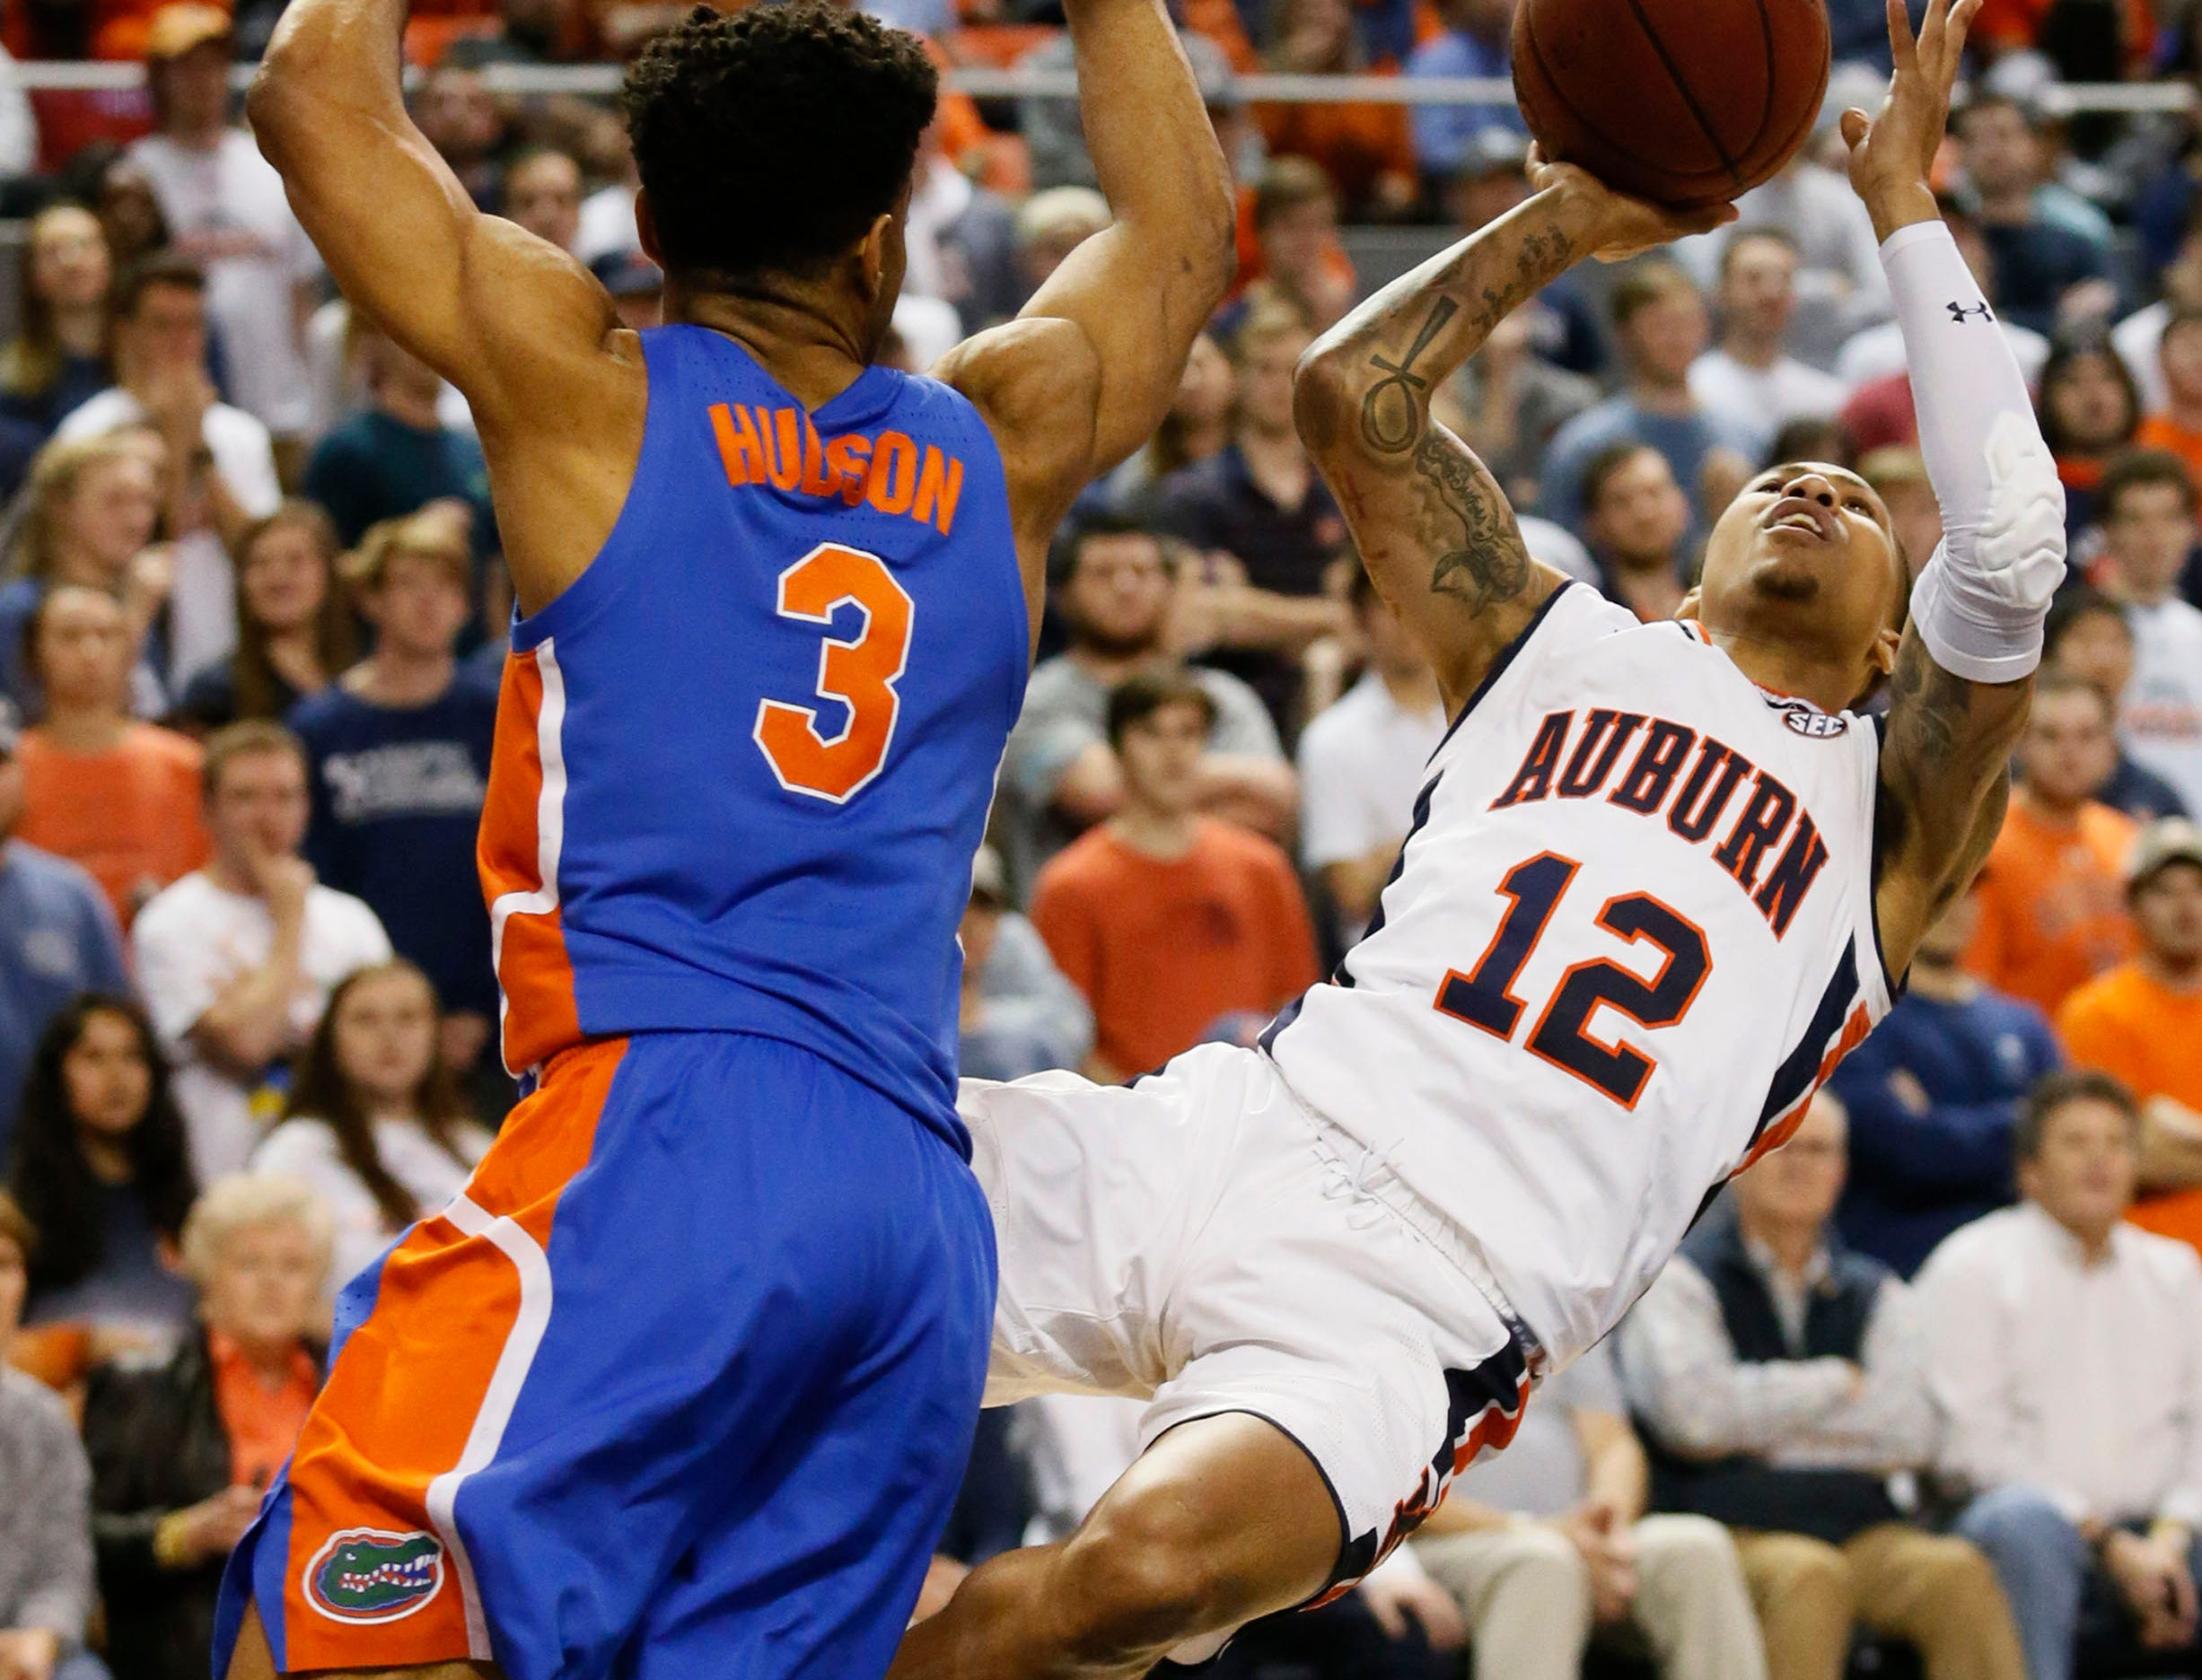 Feb 5, 2019; Auburn, AL, USA; Auburn Tigers guard J'Von McCormick (12) takes a shot after being fouled by the Florida Gators during the second half at Auburn Arena. Mandatory Credit: John Reed-USA TODAY Sports